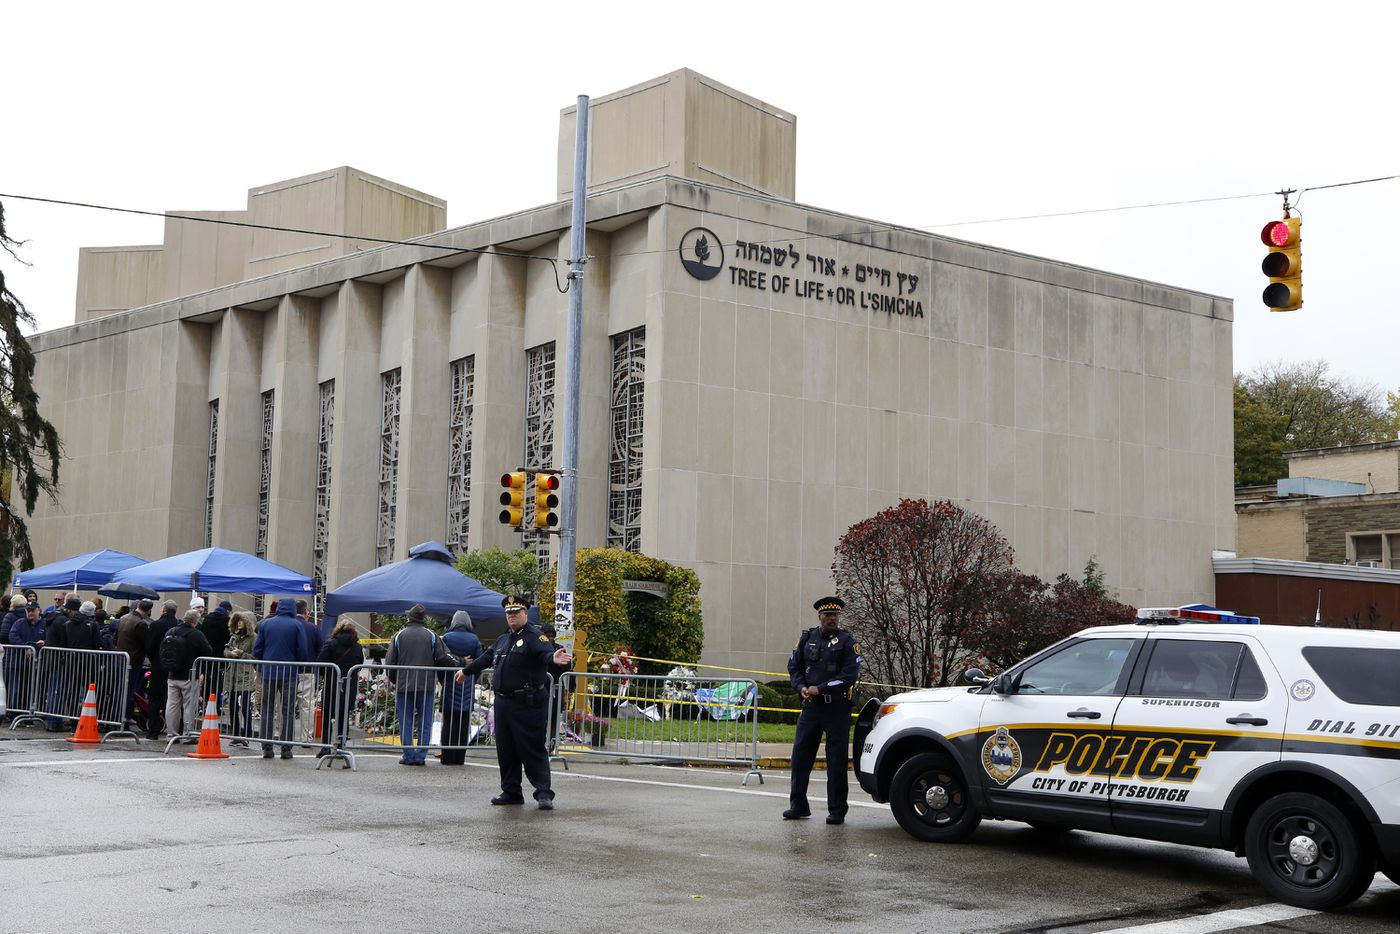 Pa. attorney general subpoenas host of favorite social-media site of accused Tree of Life shooter